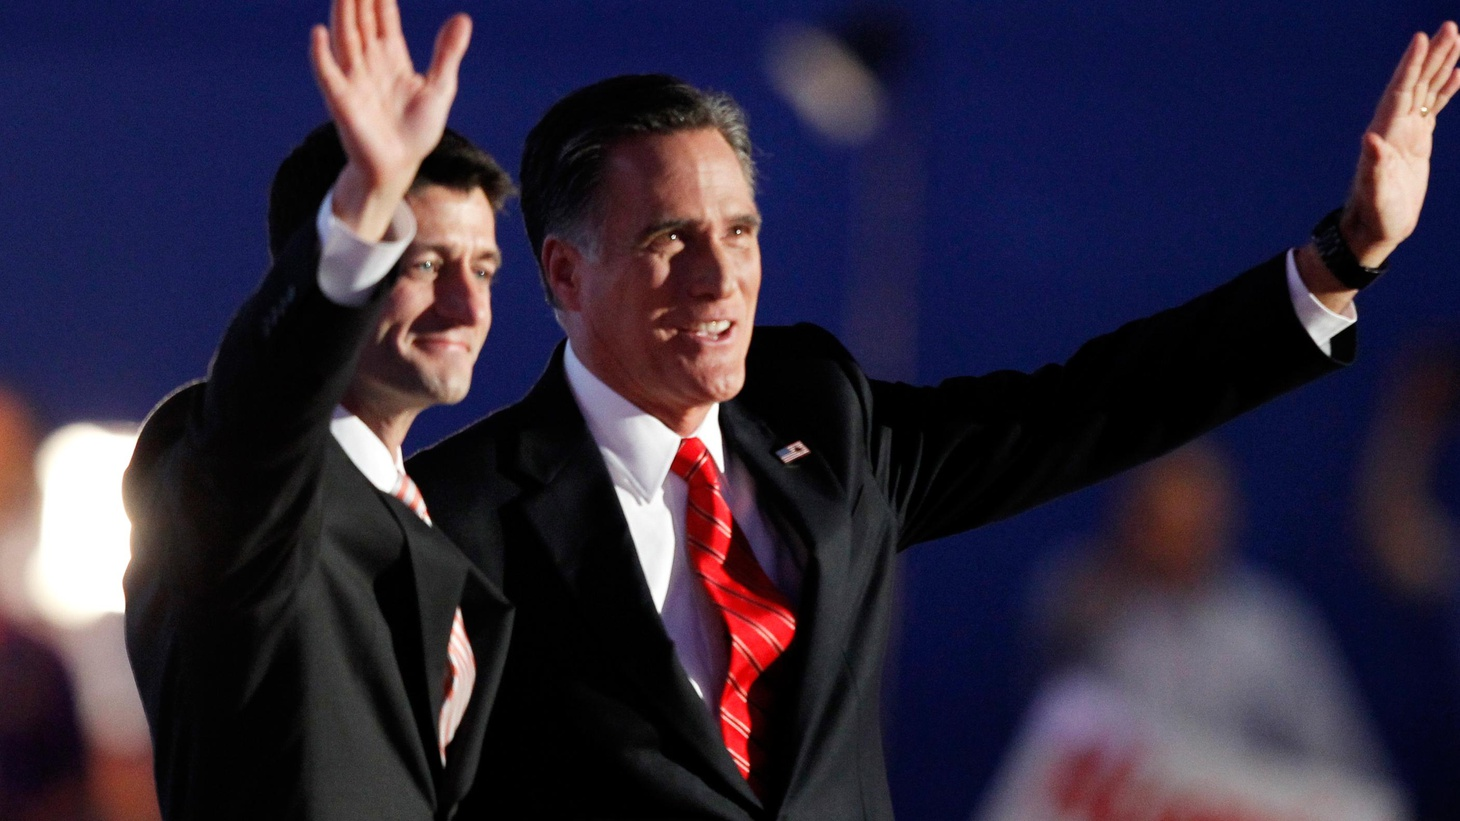 """In his speech accepting the GOP nomination, Mitt Romney tried to present his """"human"""" side, rally the base and reach out to swing voters. Did he pull it off?"""